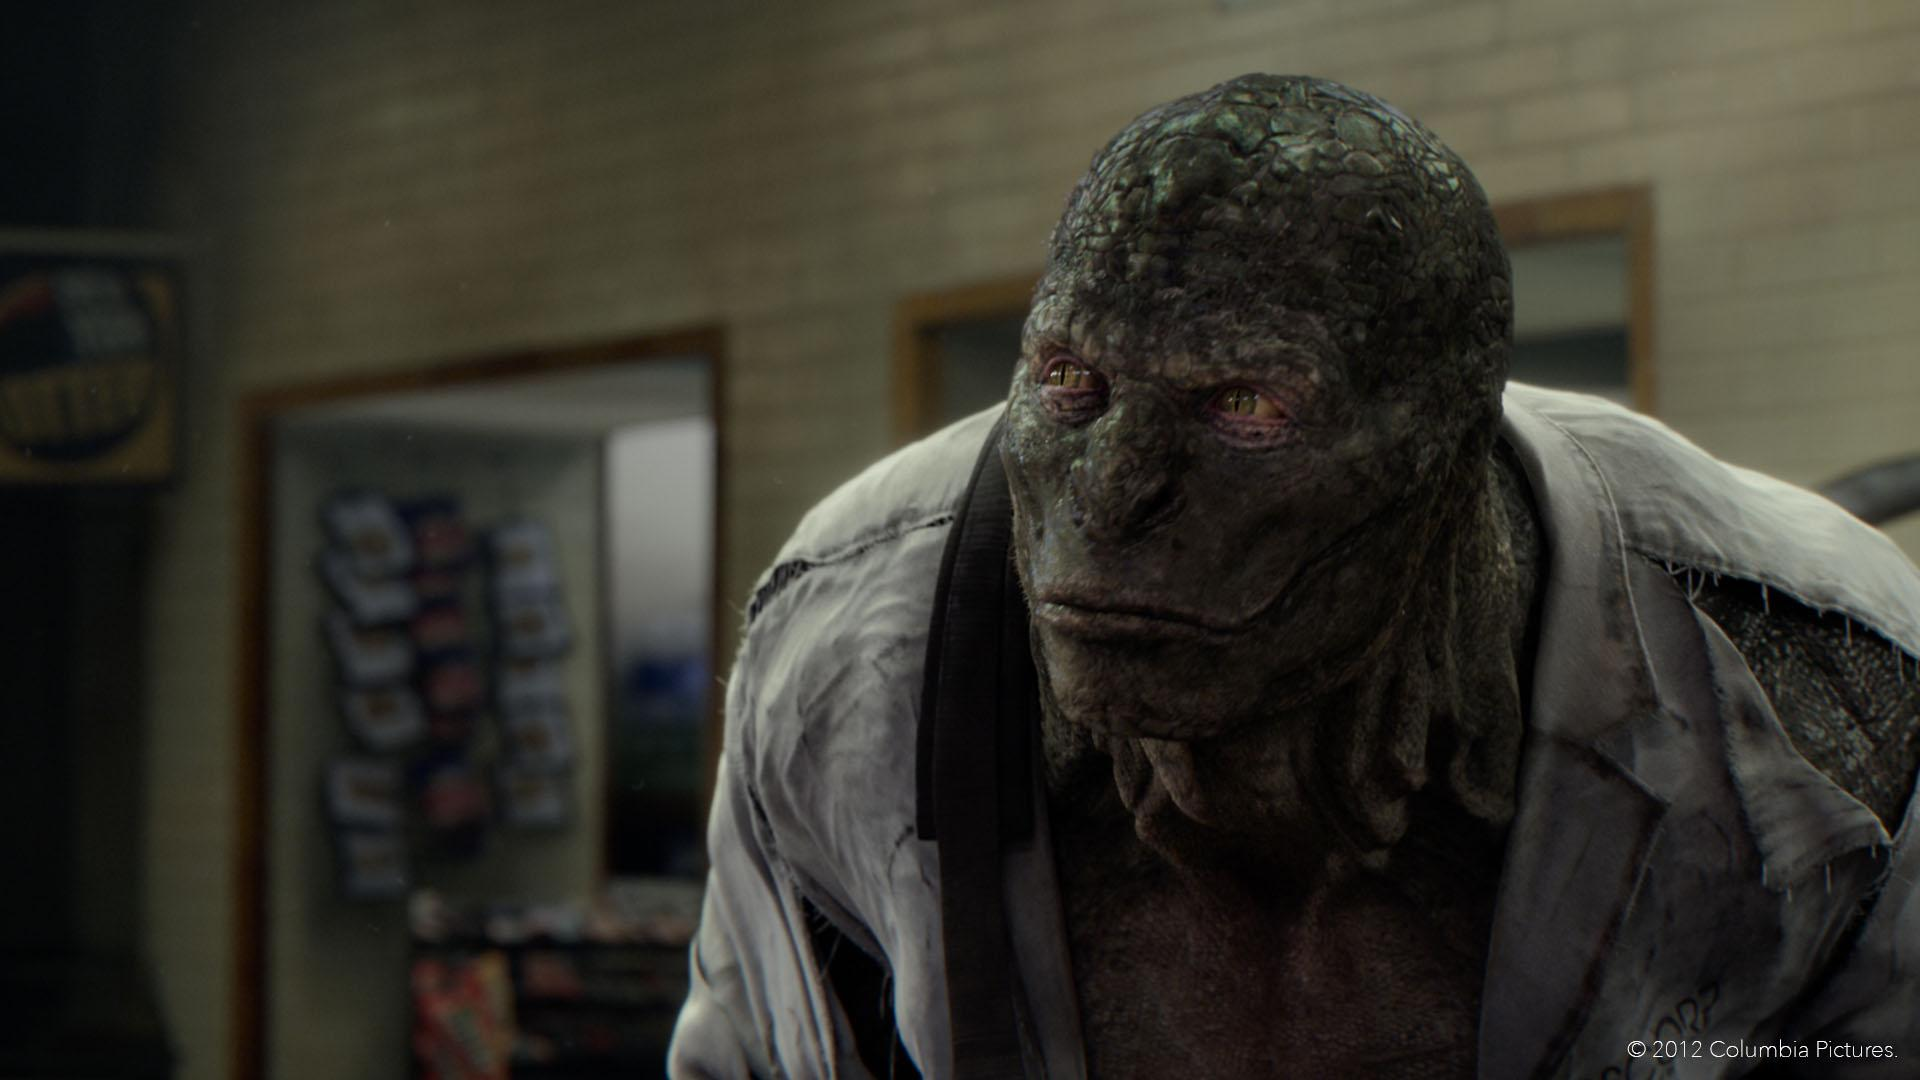 The Lizard gets some CGI lighting help from Katana for The Amazing Spiderman